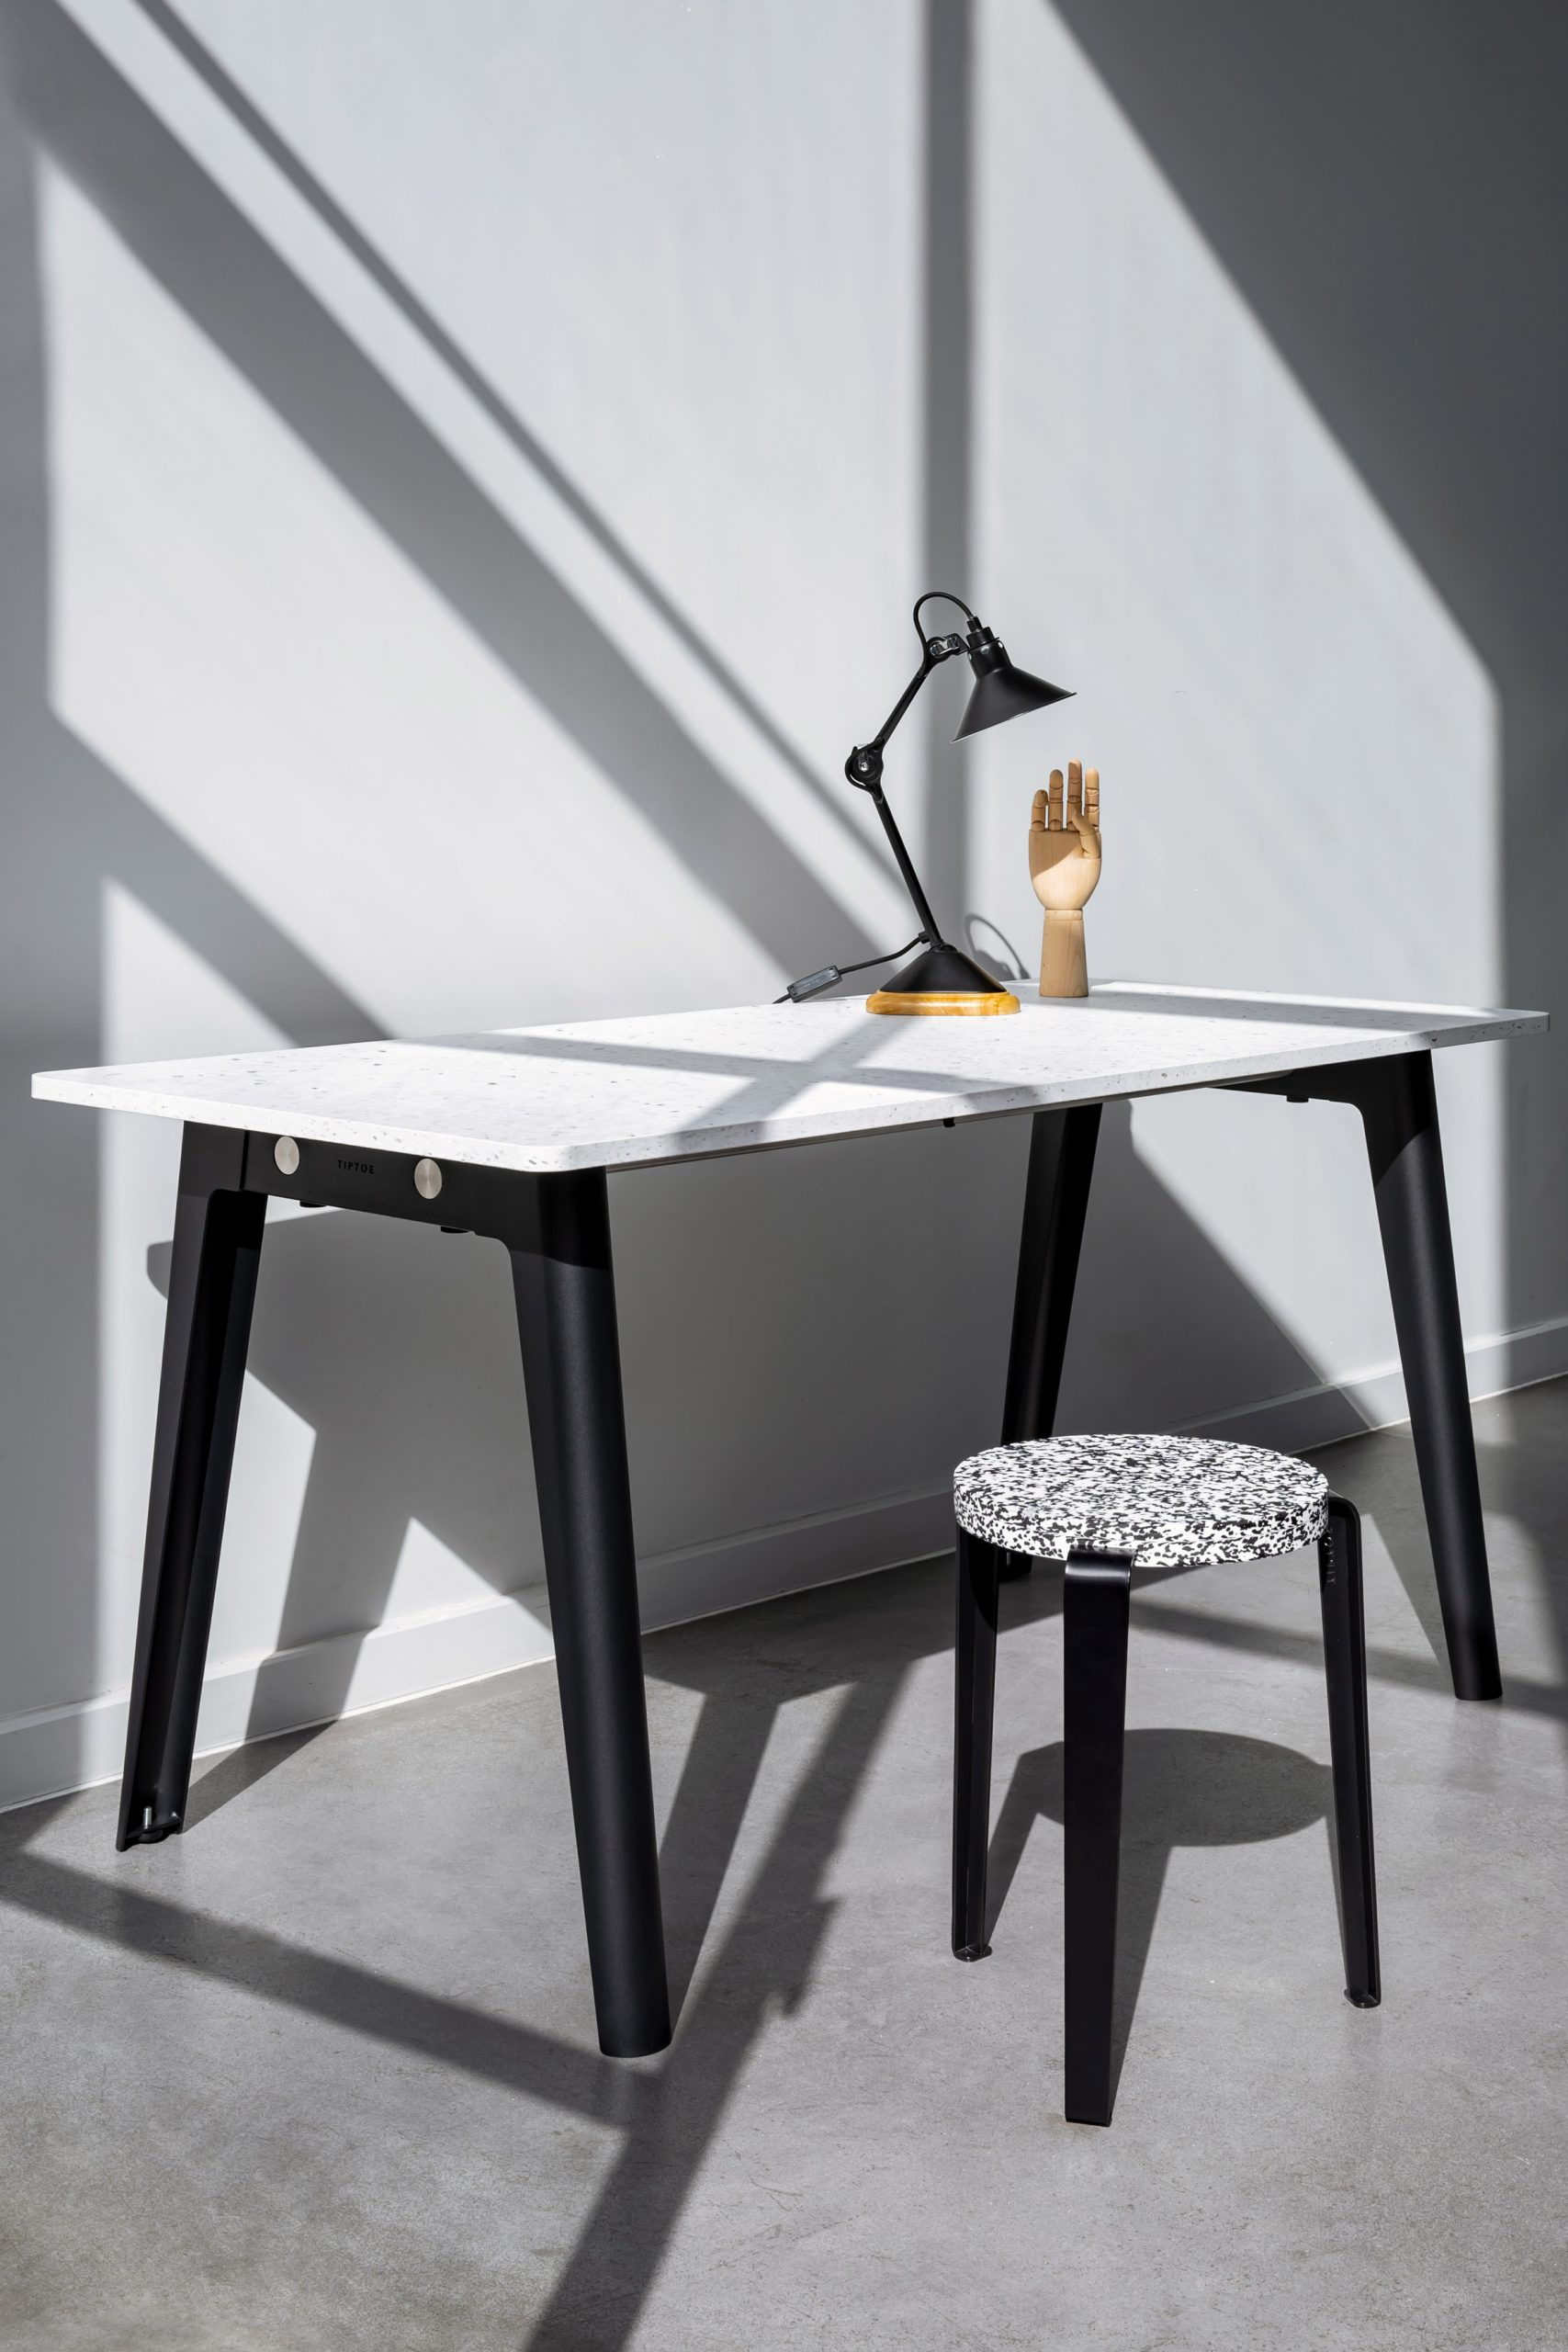 Desk by Tiptoe with black trestle-style legs and a recycled plastic top